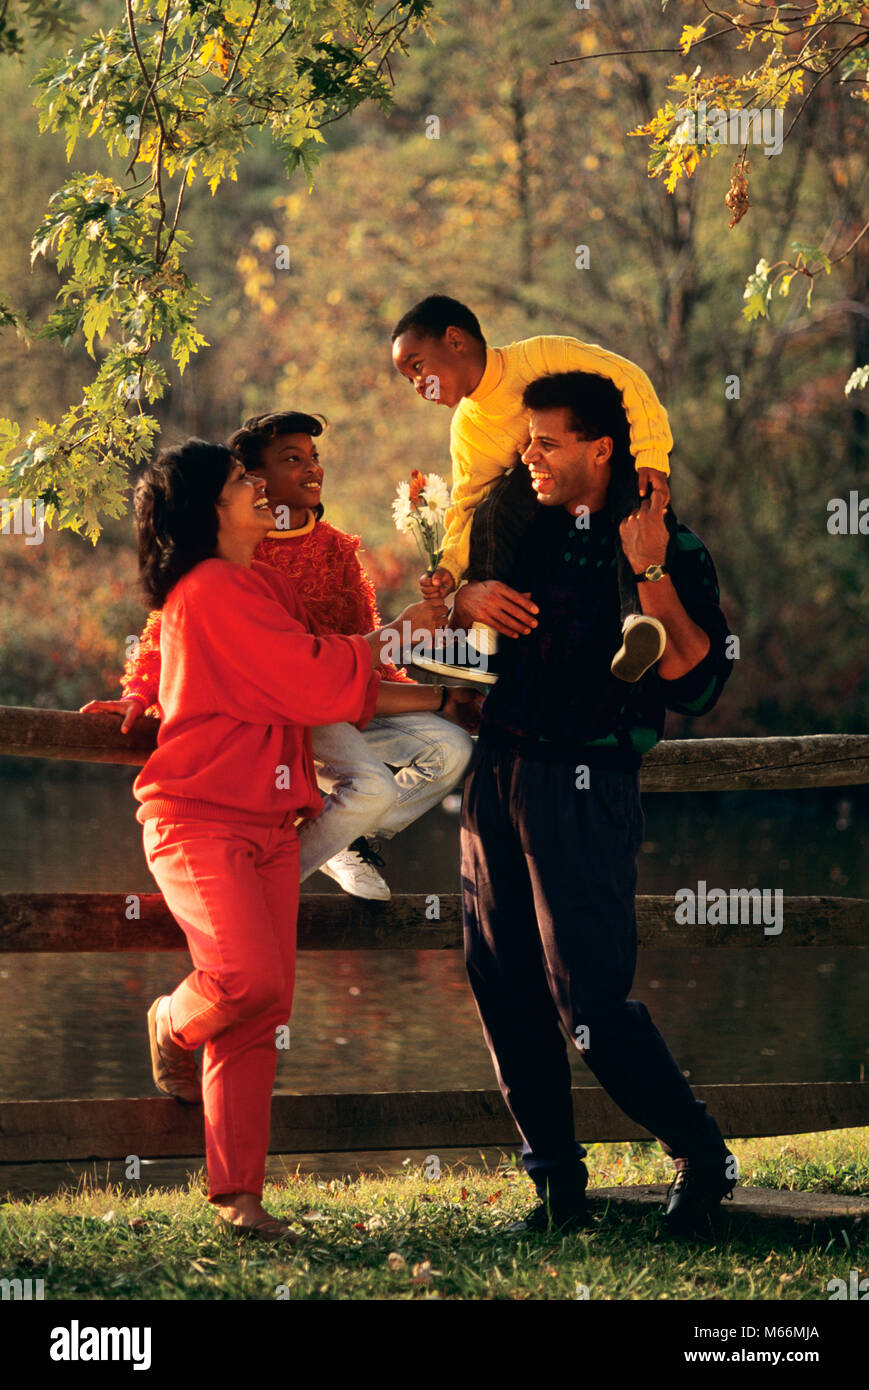 1990s AFRICAN AMERICAN FAMILY STANDING BY FENCE IN AUTUMN BOY HANDING FLOWERS TO MOTHER - kj12498 DEG002 HARS STAND - Stock Image